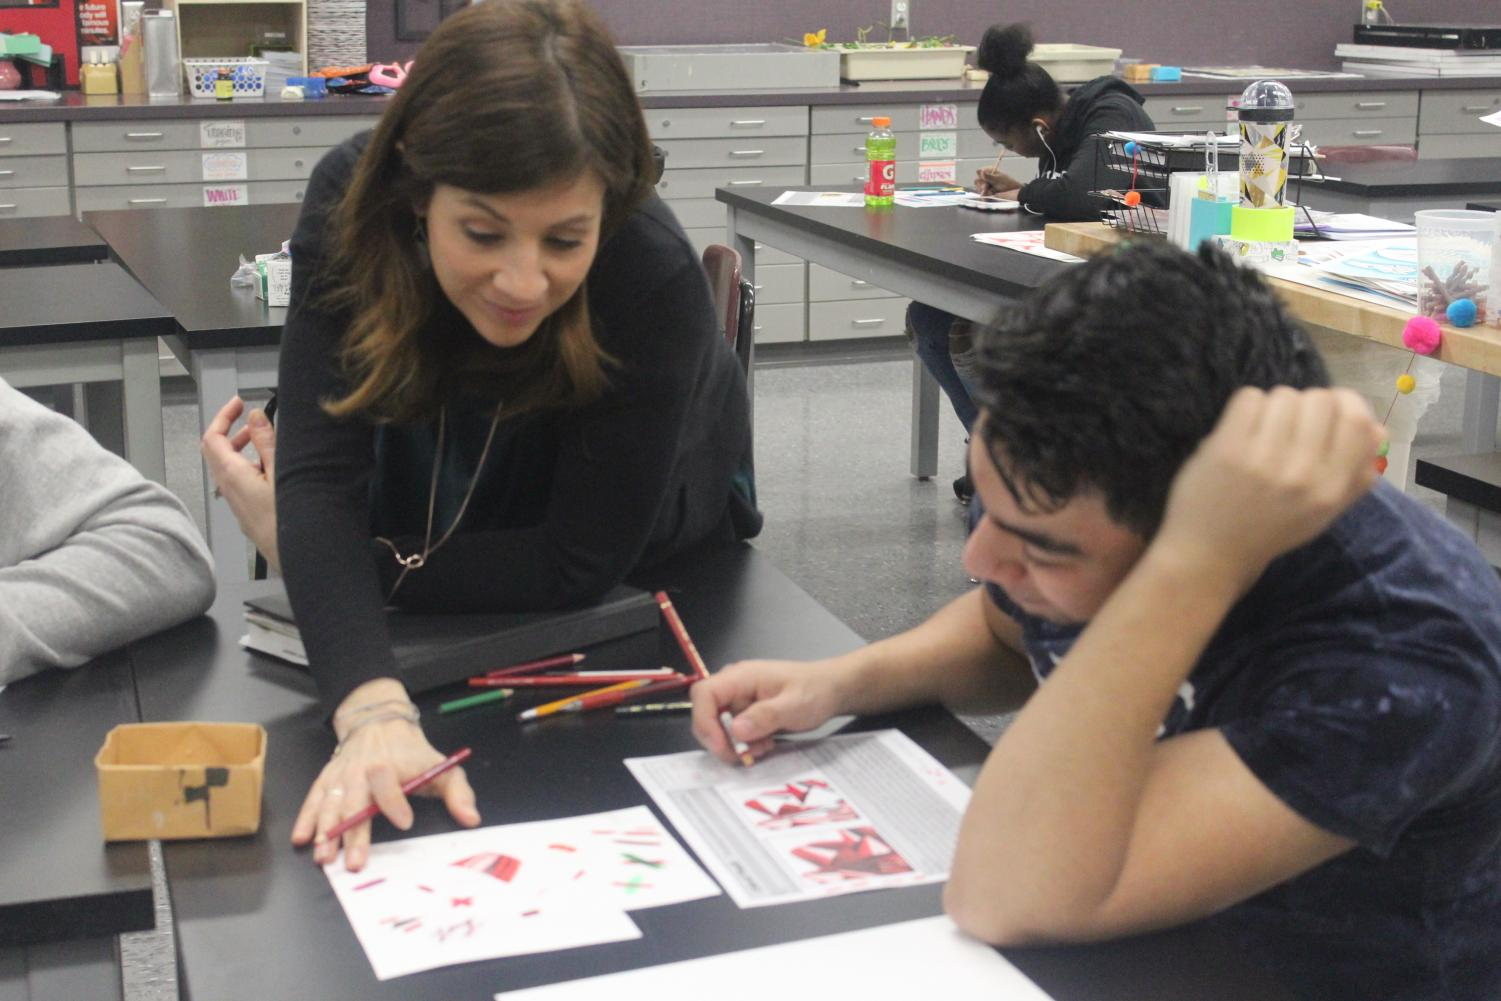 Allison Kegley helps a student during art class. Kegley was recently named the Ben Davis Teacher of the Year.